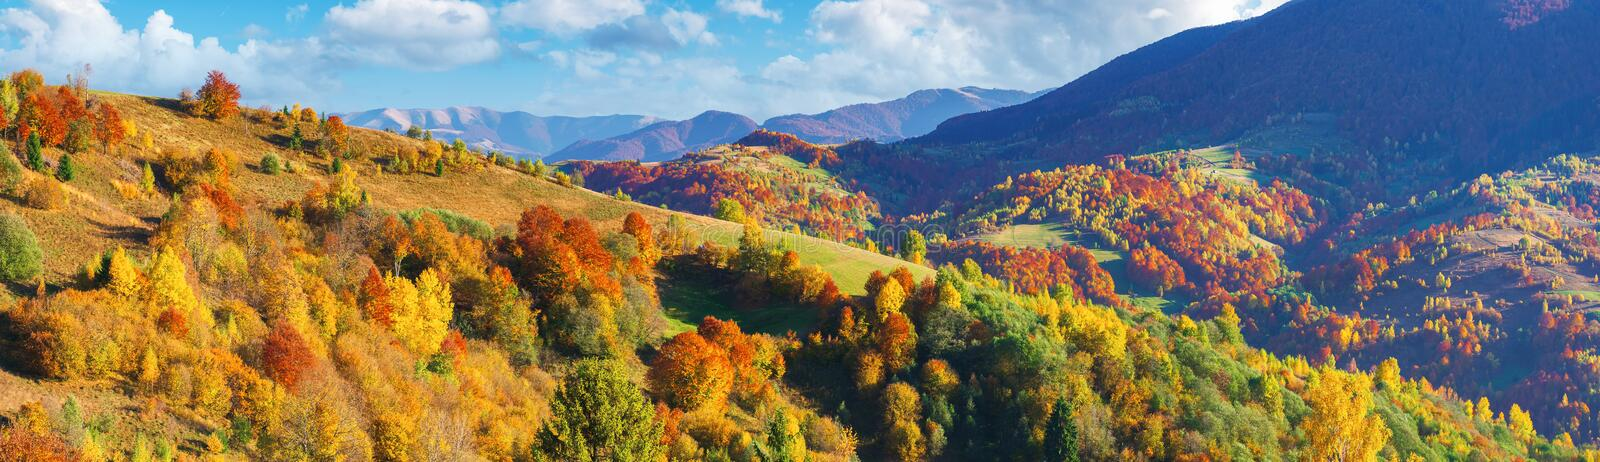 Wonderful autumn scenery in mountains. Wonderful autumn panorama in mountains. trees in fall colorful foliage on the hill. clouds on the blue sky above the stock image